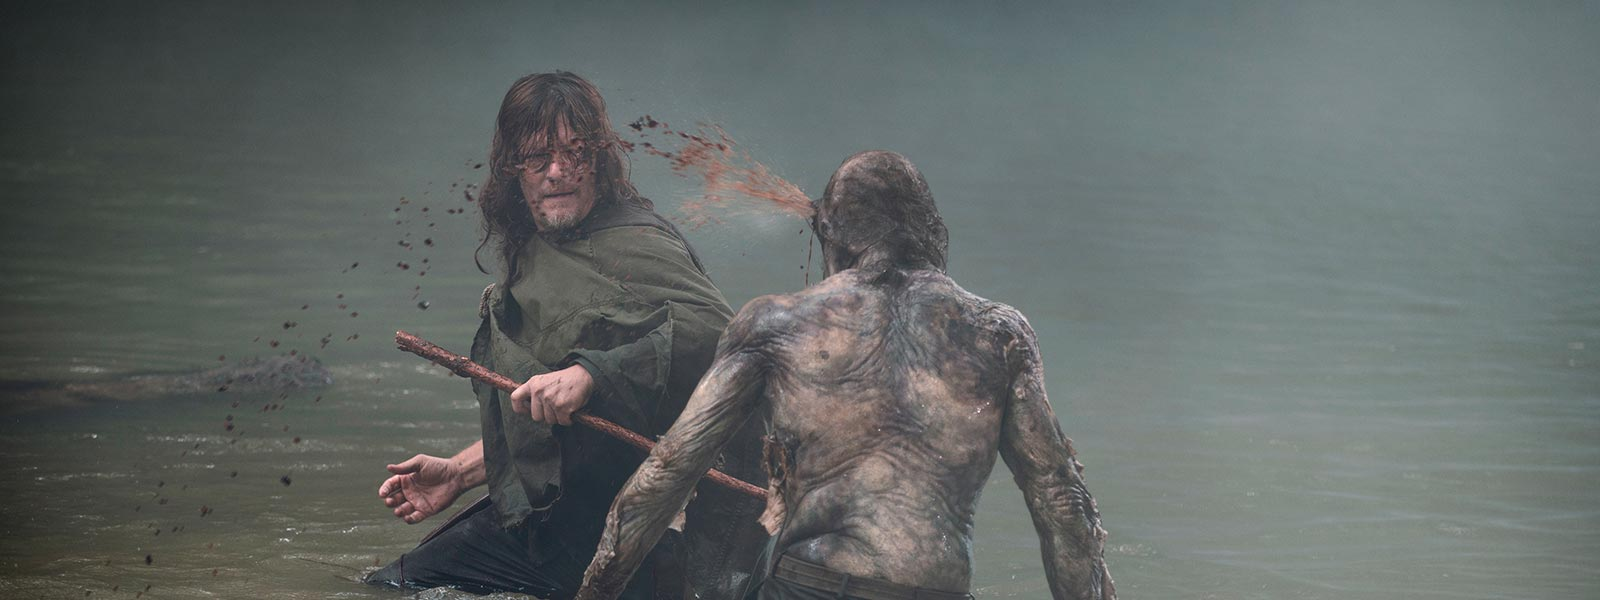 the-walking-dead-episode-906-daryl-reedus-post-800×600